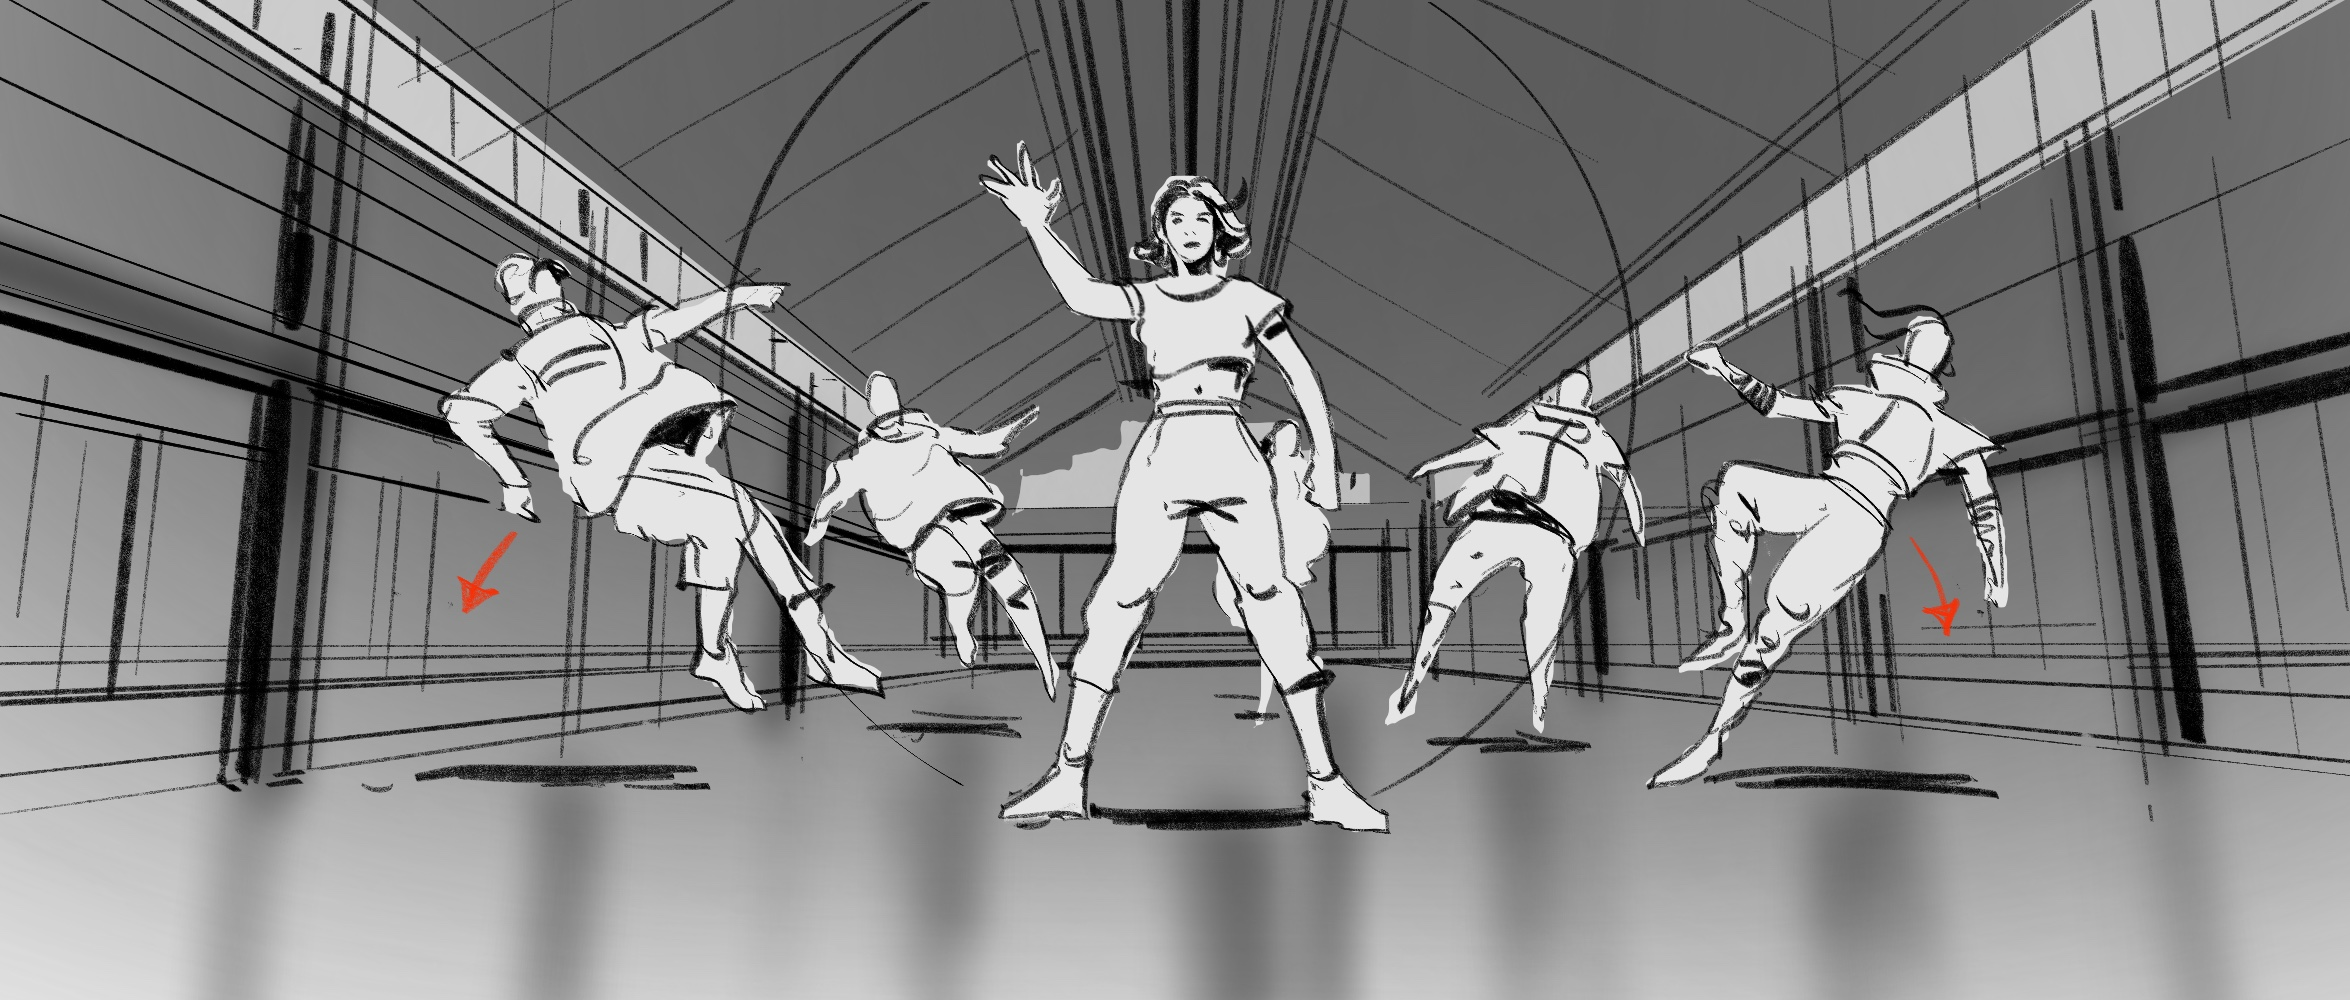 Lena_Boundaries_Storyboard_06_v02.jpg